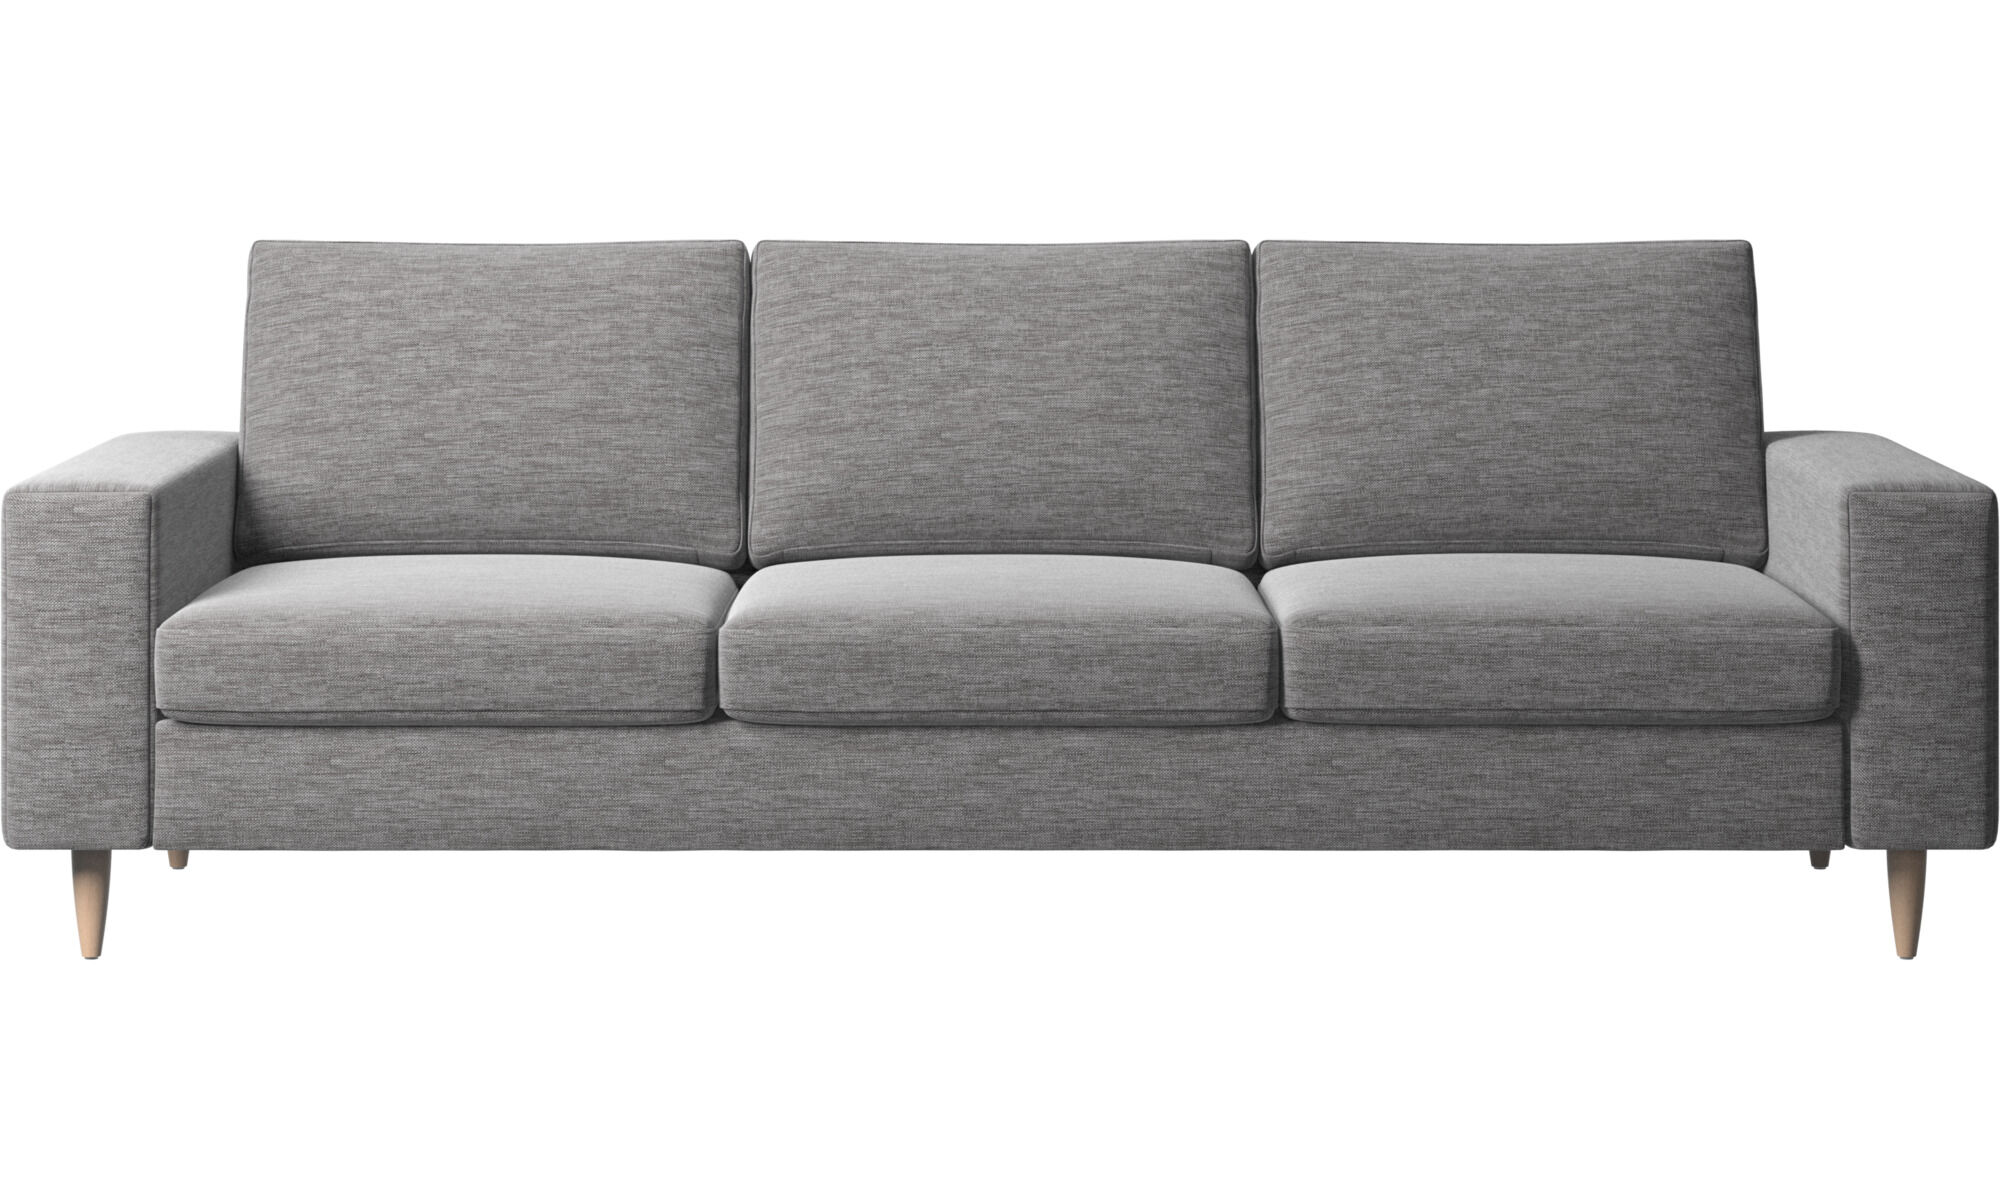 Sofa Catalog Ekornes Oslo Collection Sofas TheSofa